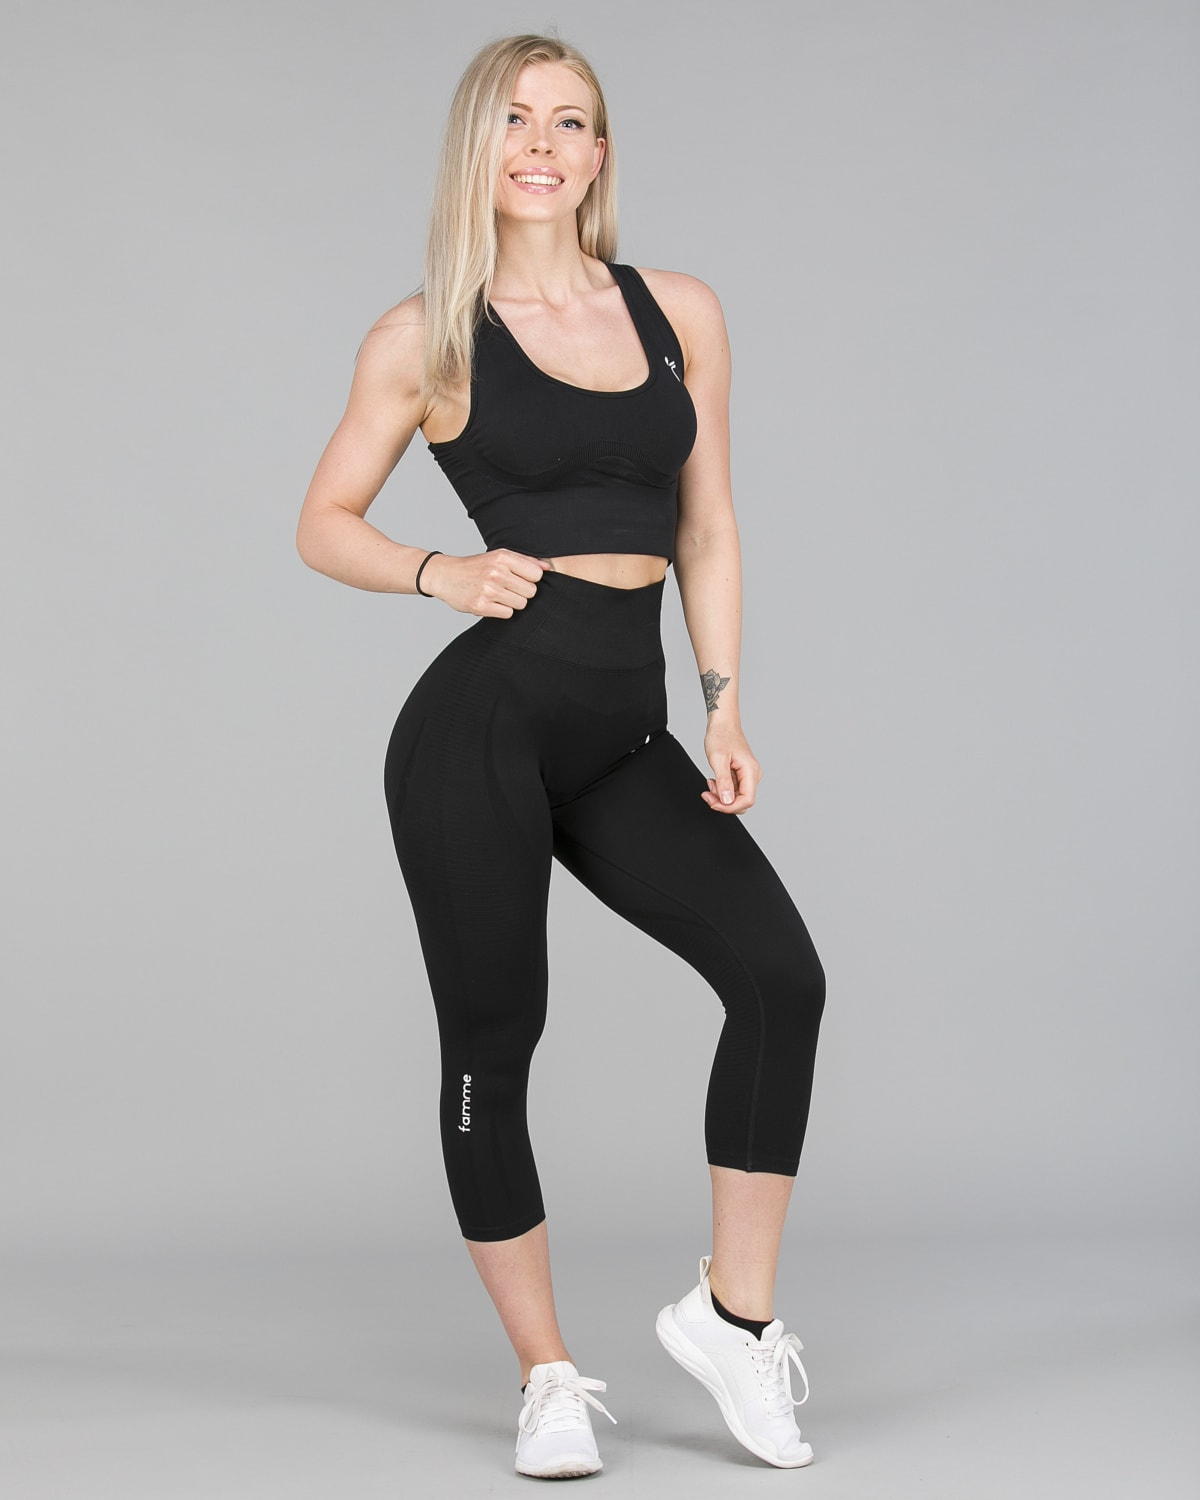 FAMME – Vortex Leggings 7:8 – Black2